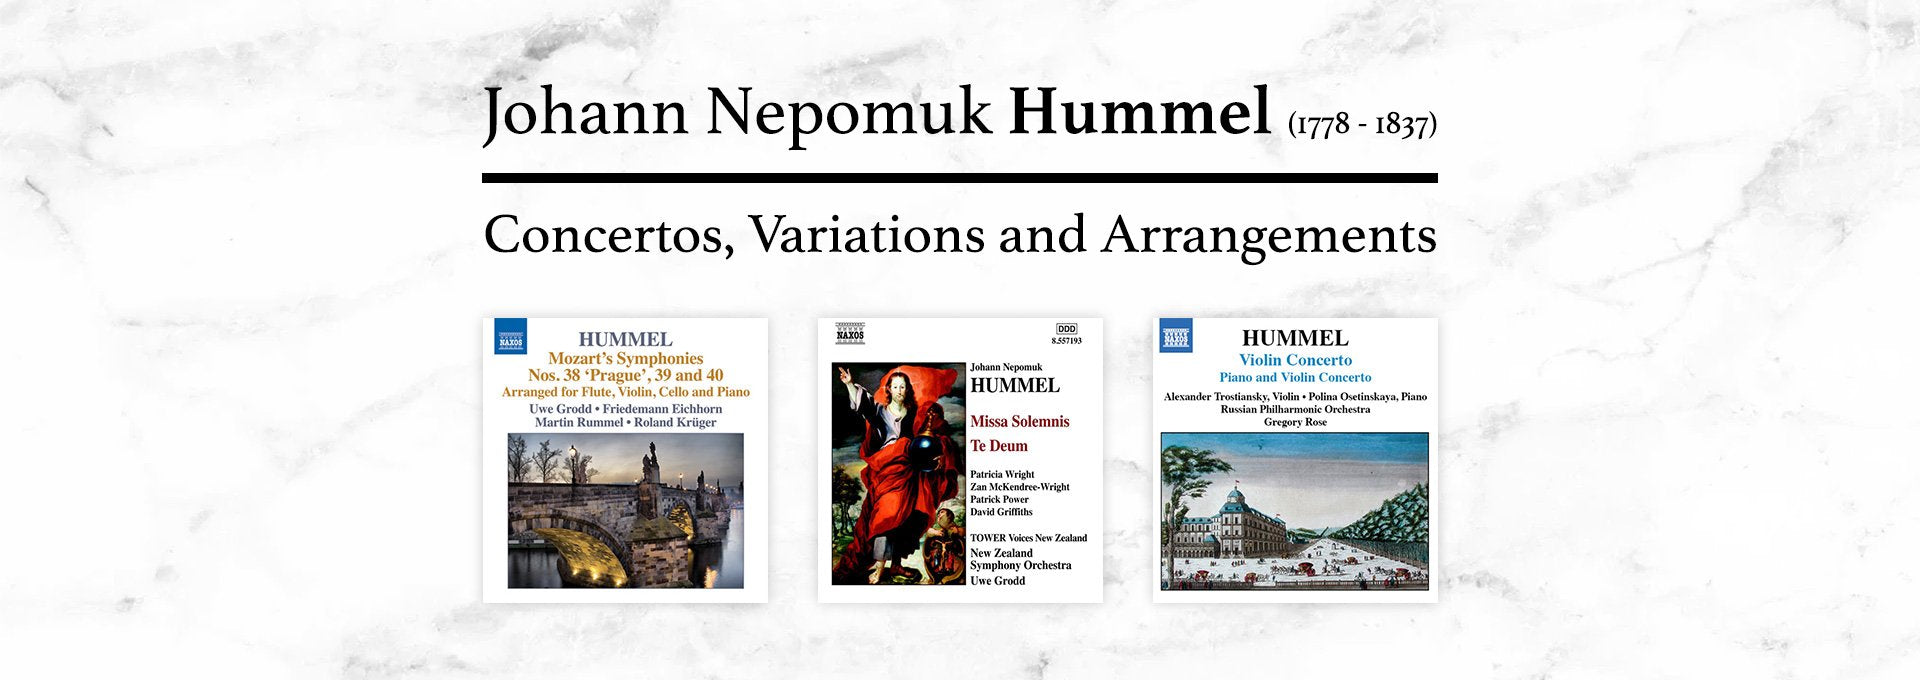 Johann Nepomuk Hummel Concertos, Variations and Arrangements